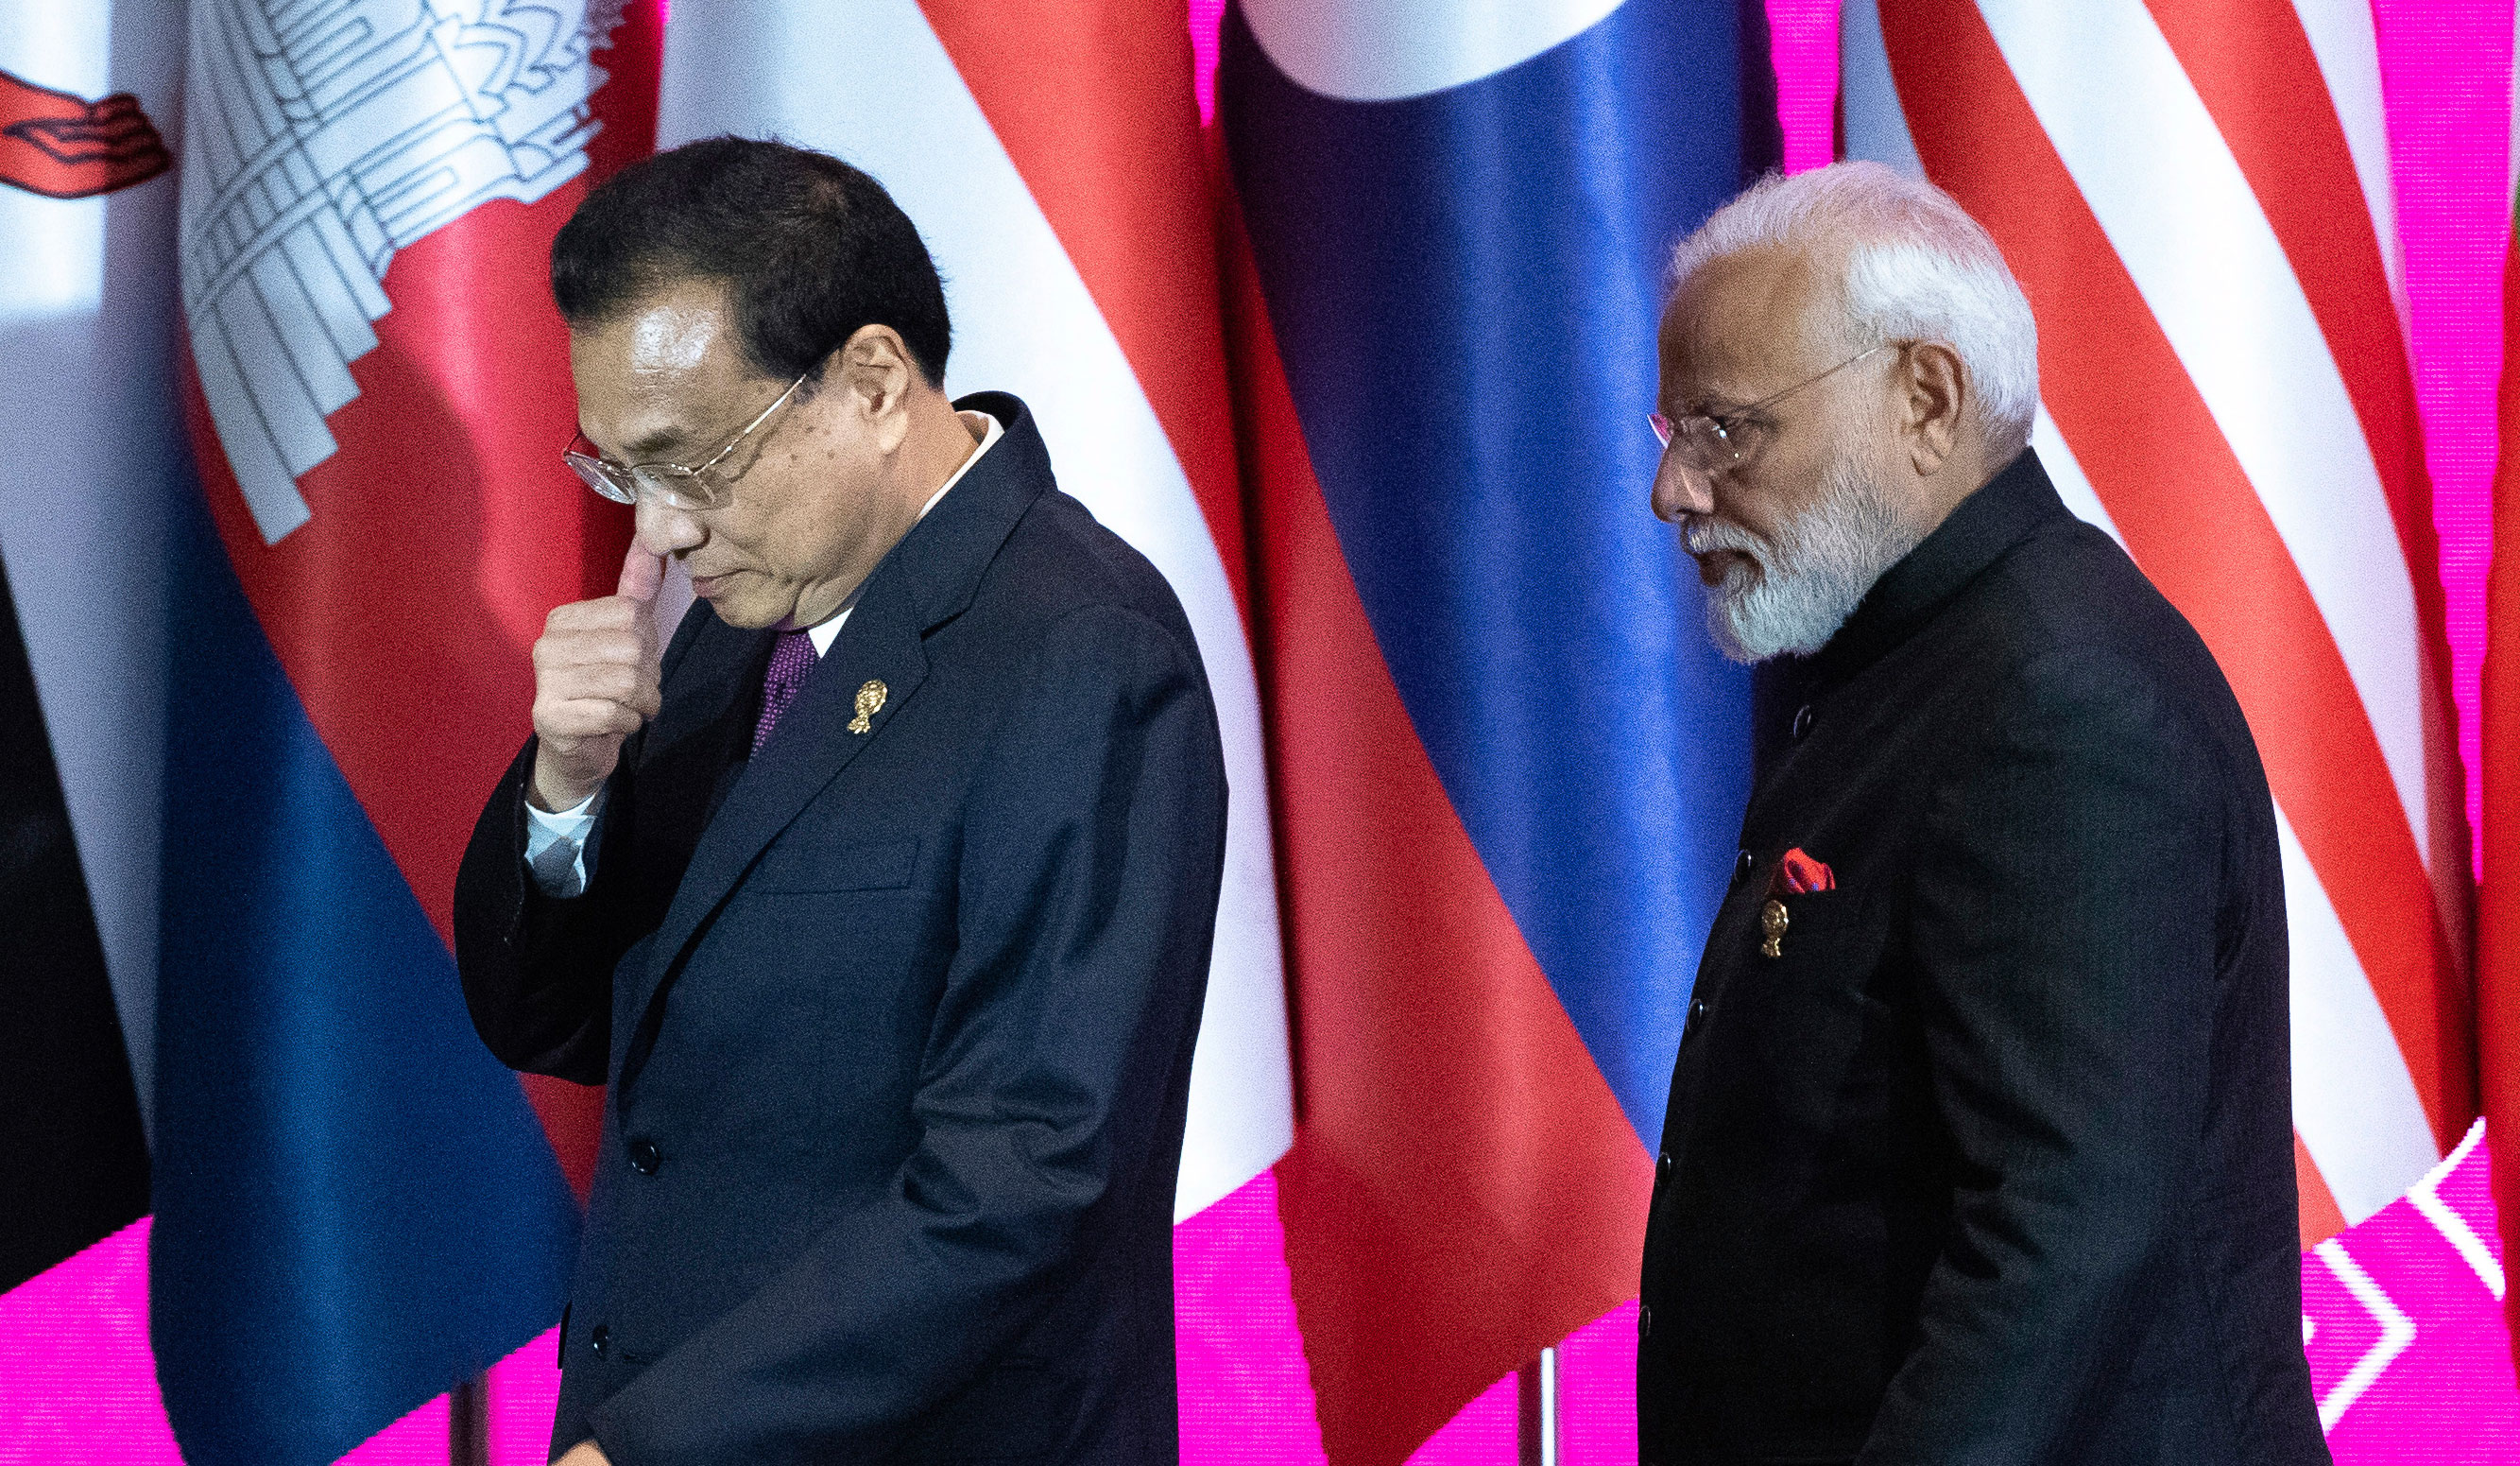 Chinese Premier Li Keqiang and Prime Minister Narendra Modi at the Regional Comprehensive Economic Partnership Association of Southeast Asian Nations summit in Nonthaburi, Thailand, on November 4, 2019.